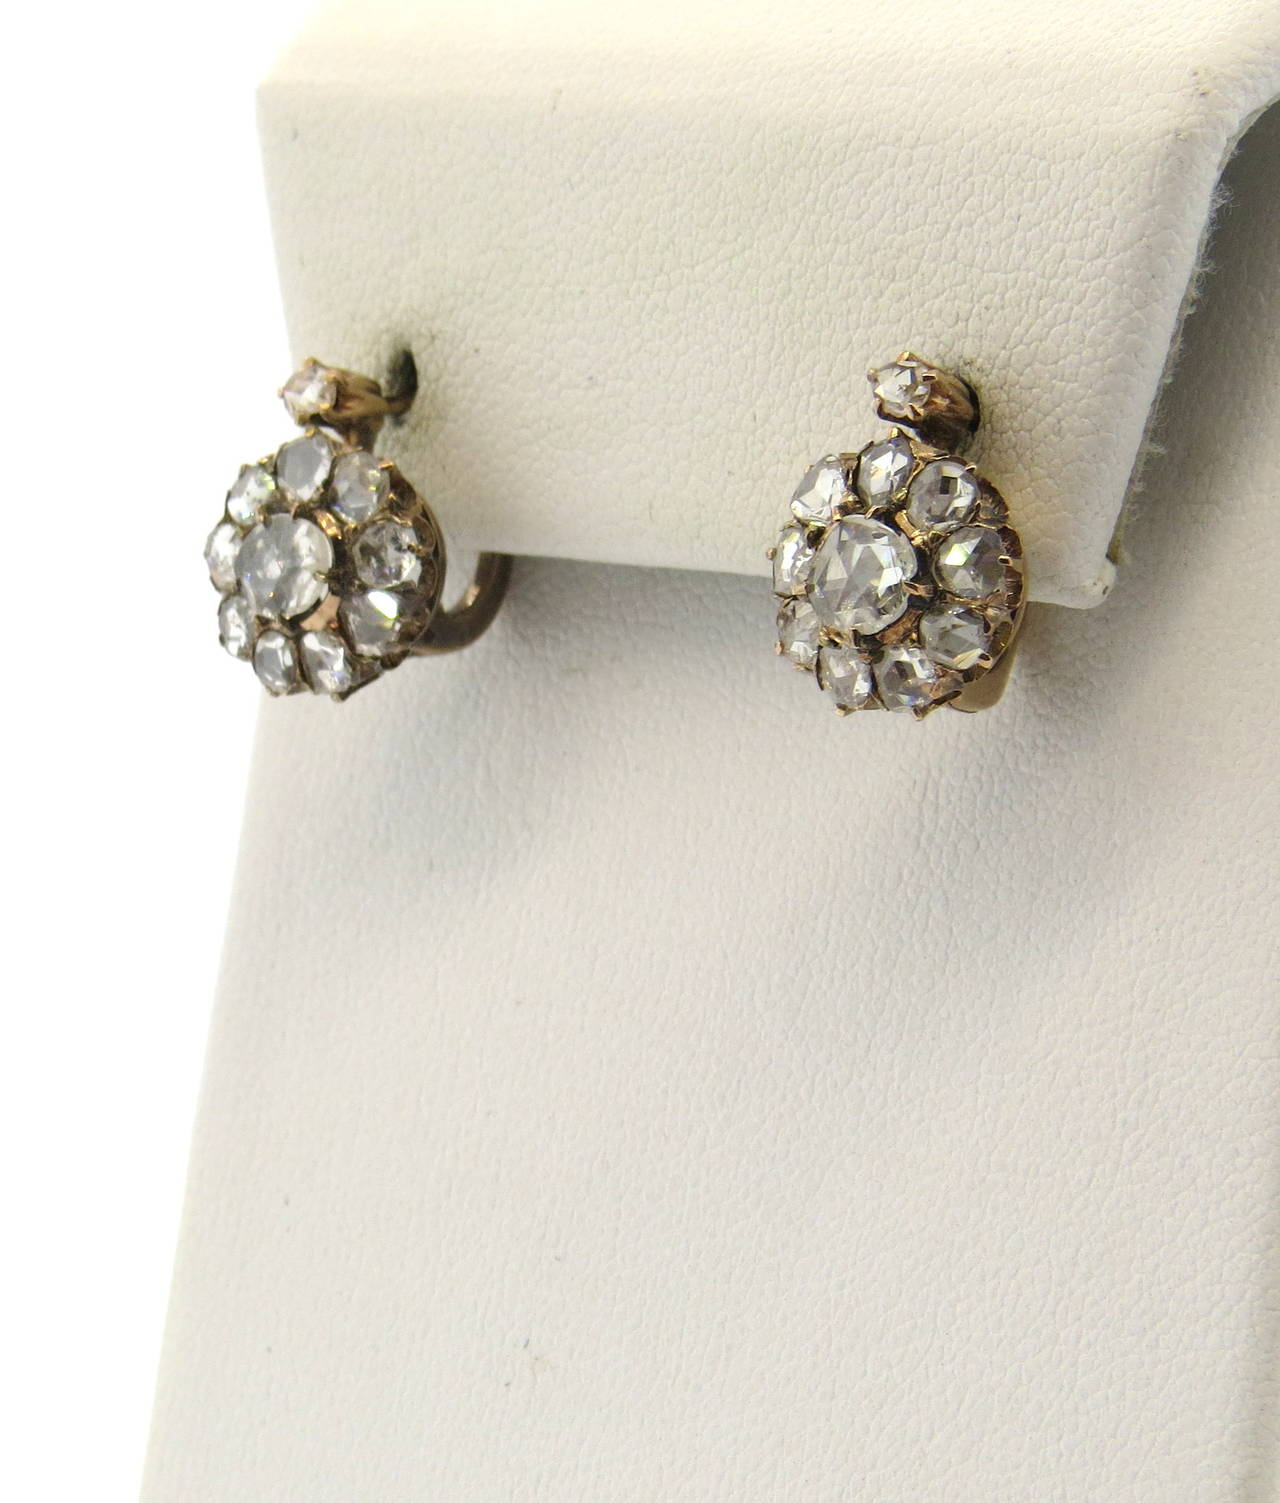 Early Victorian Rose Cut Diamond Gold Leverback Earrings at 1stdibs